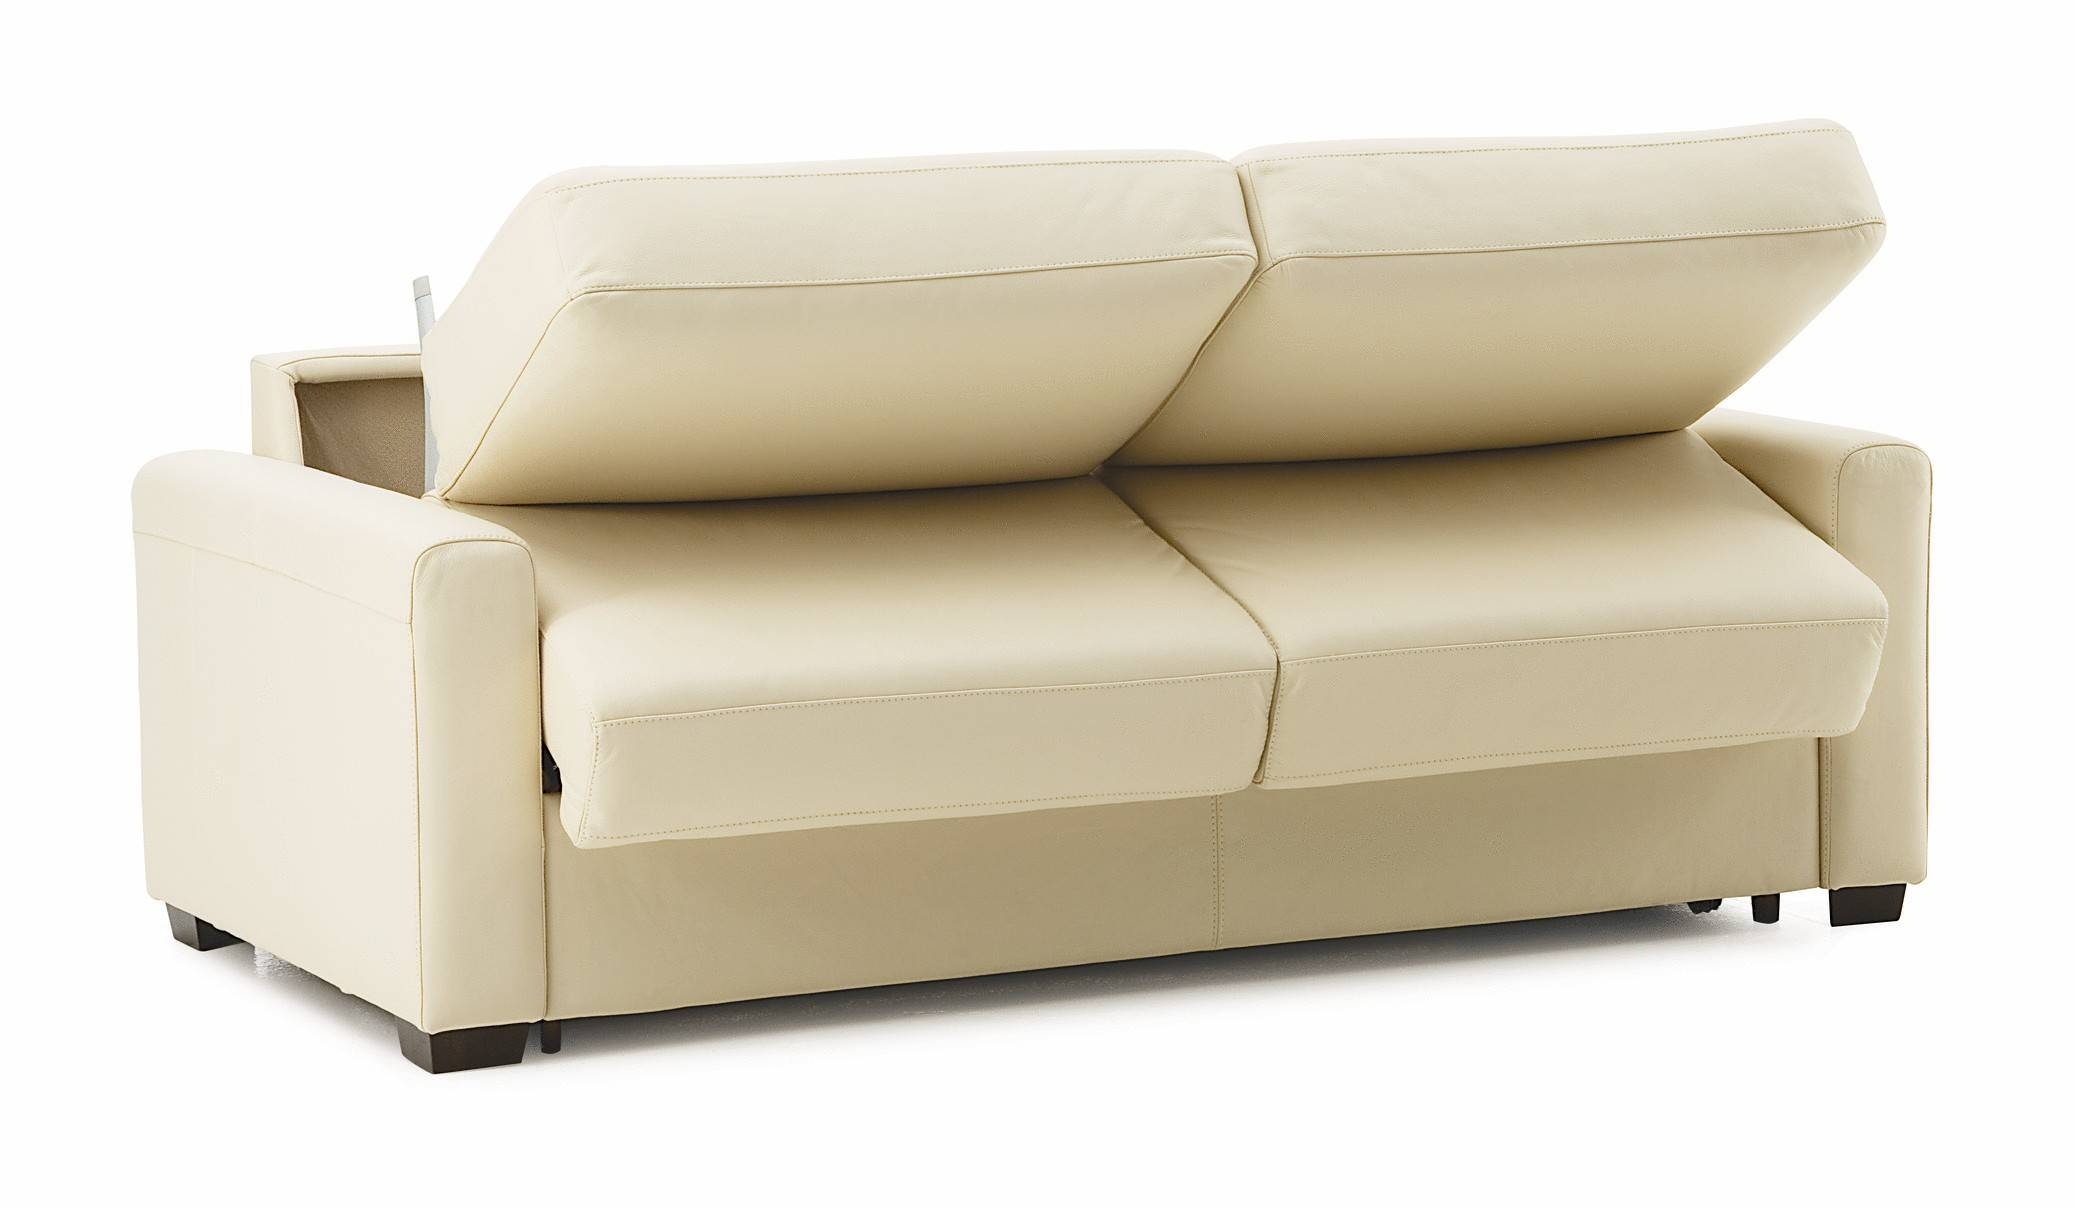 Sofas Center : American Leather Kingizeleeperofakingofa Bedking Within American Sofa Beds (View 4 of 30)